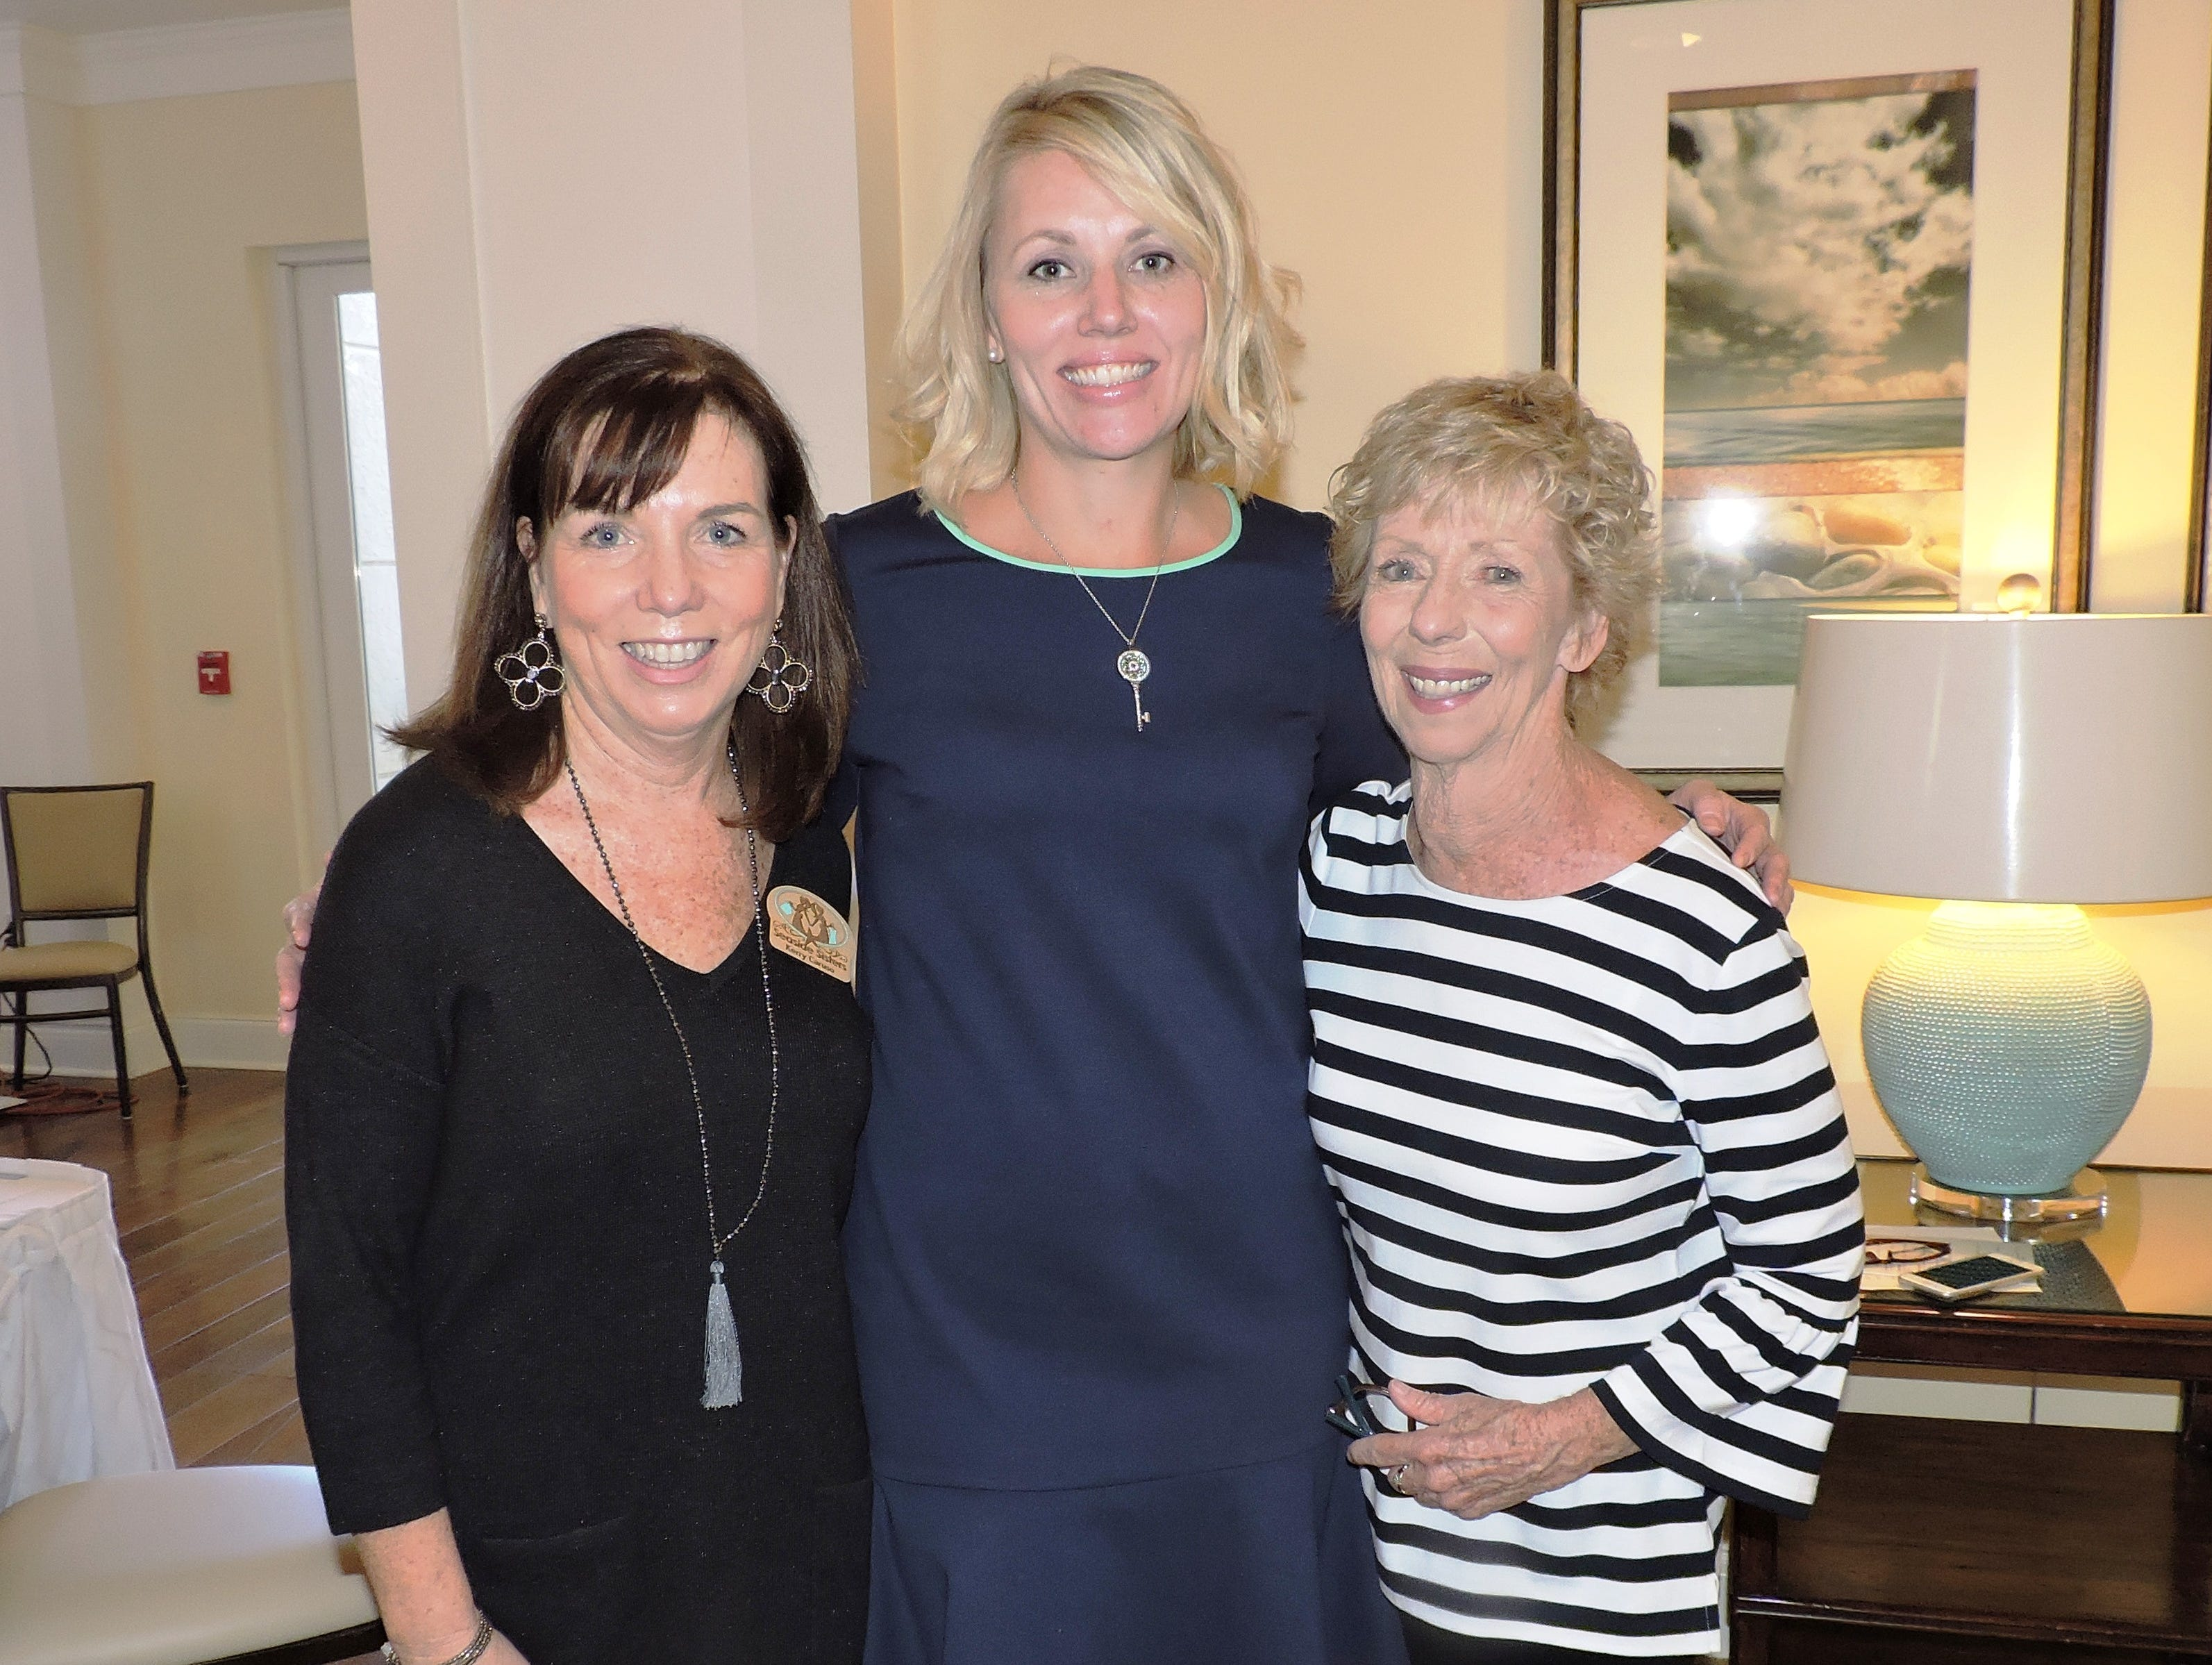 Kerri Caruso, left, Kelly Johnson and Kathy Carmody at Mary's Shelter's Fashion Show & Luncheon Jan.22 at Willoughby Golf Club in Stuart.